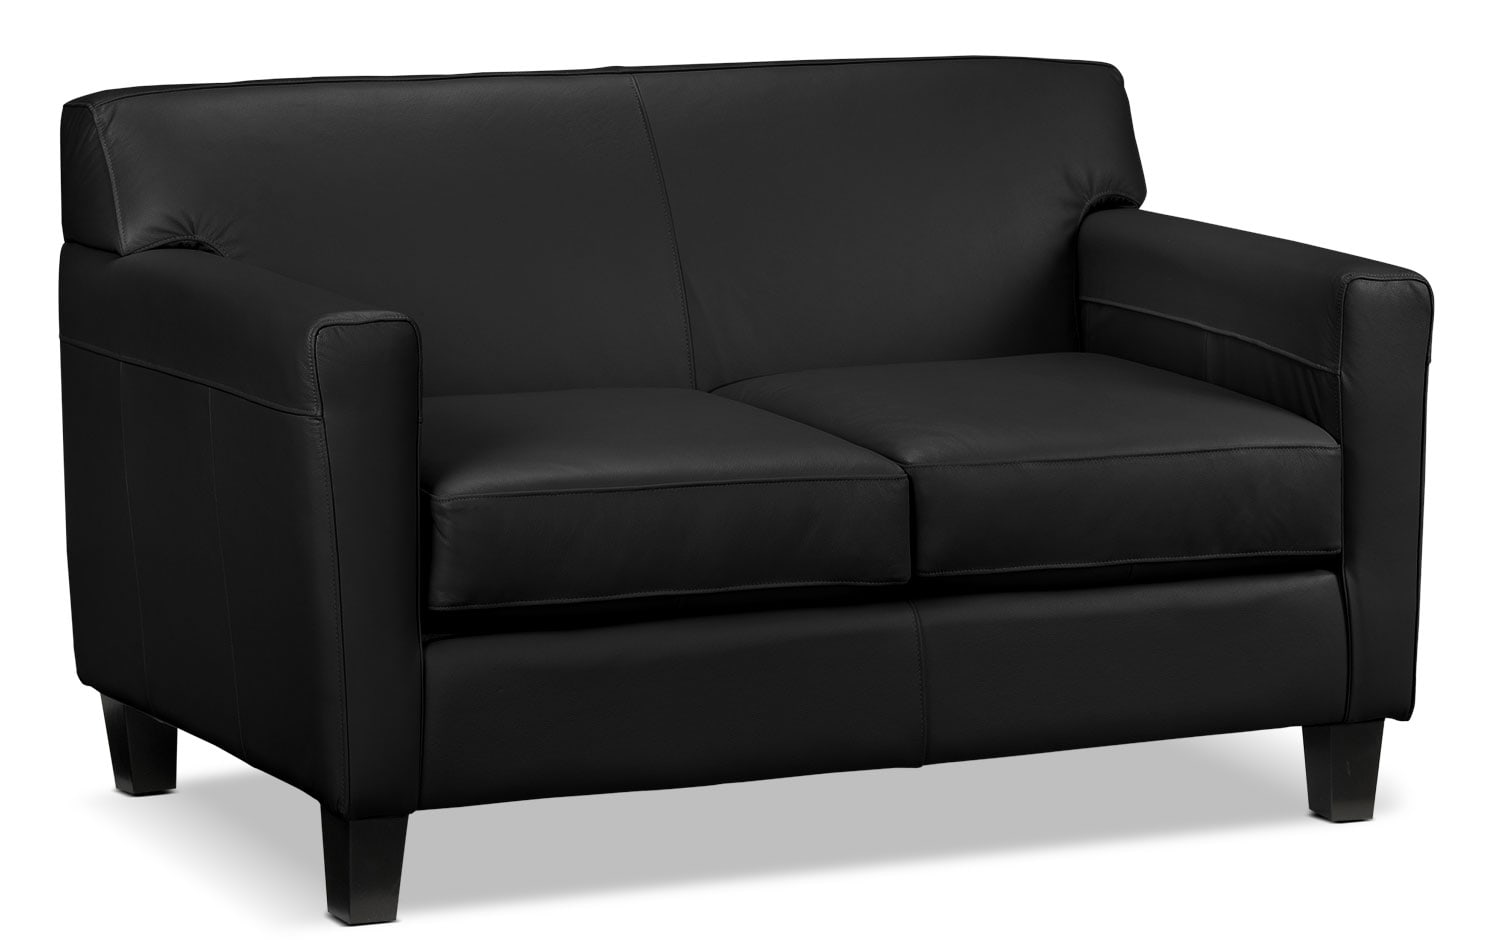 Whitney Loveseat - Black